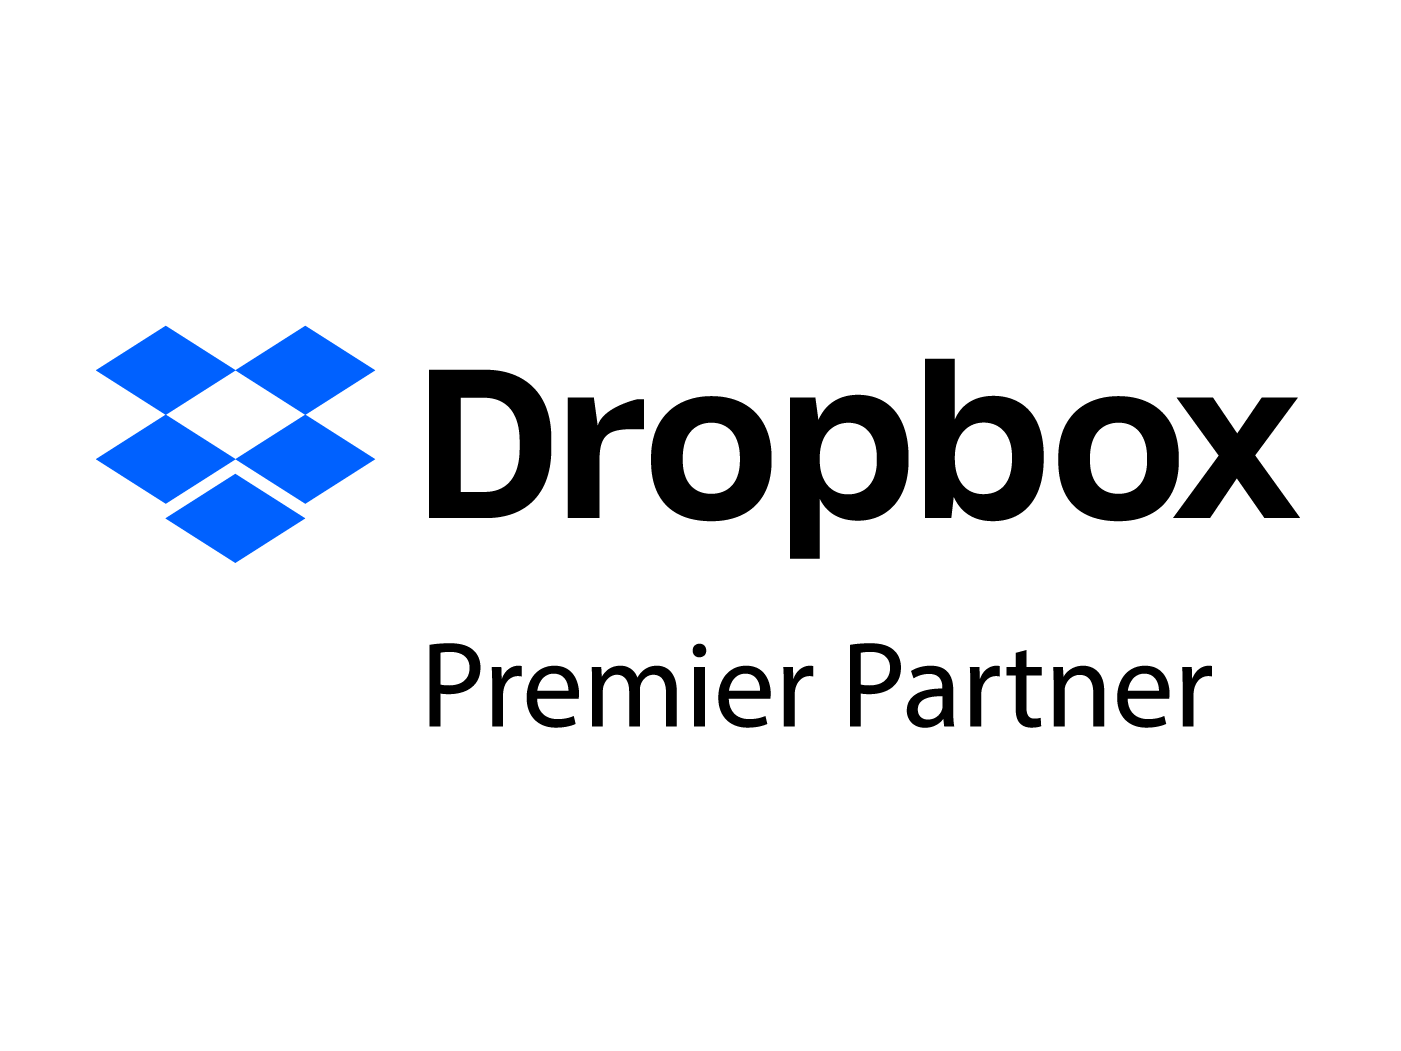 Dropbox selected Boxcryptor as one of their Premier Technology Partners to provide an additional security layer for you.